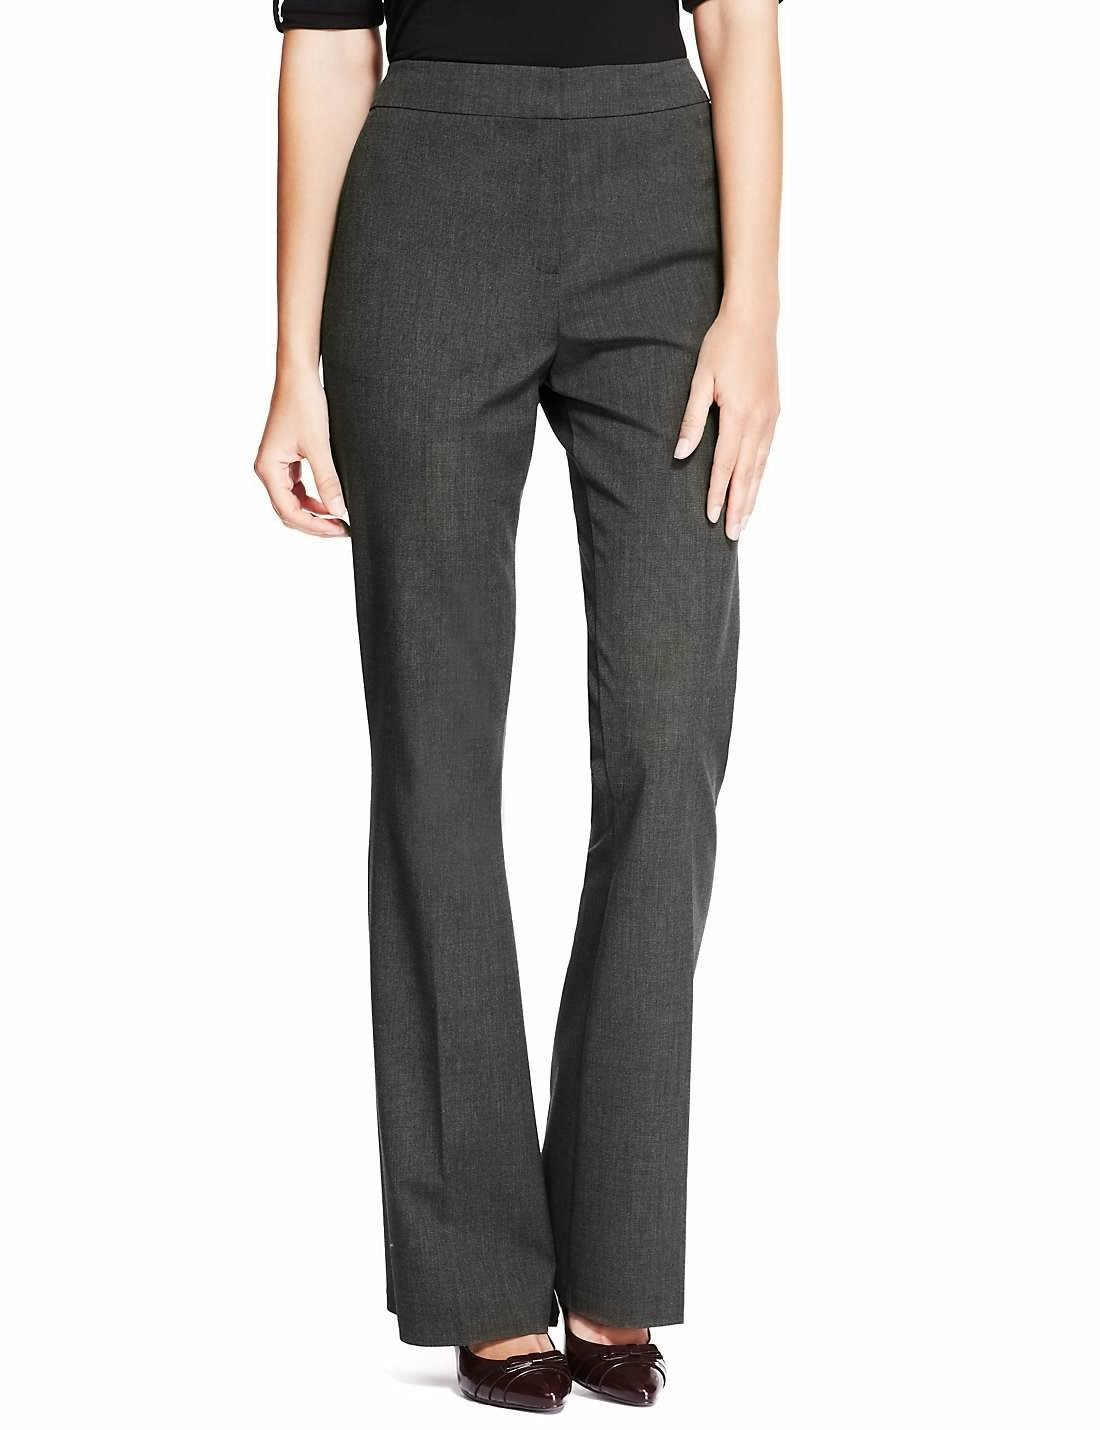 Charcoal 2-Way Stretch Bootleg Trousers